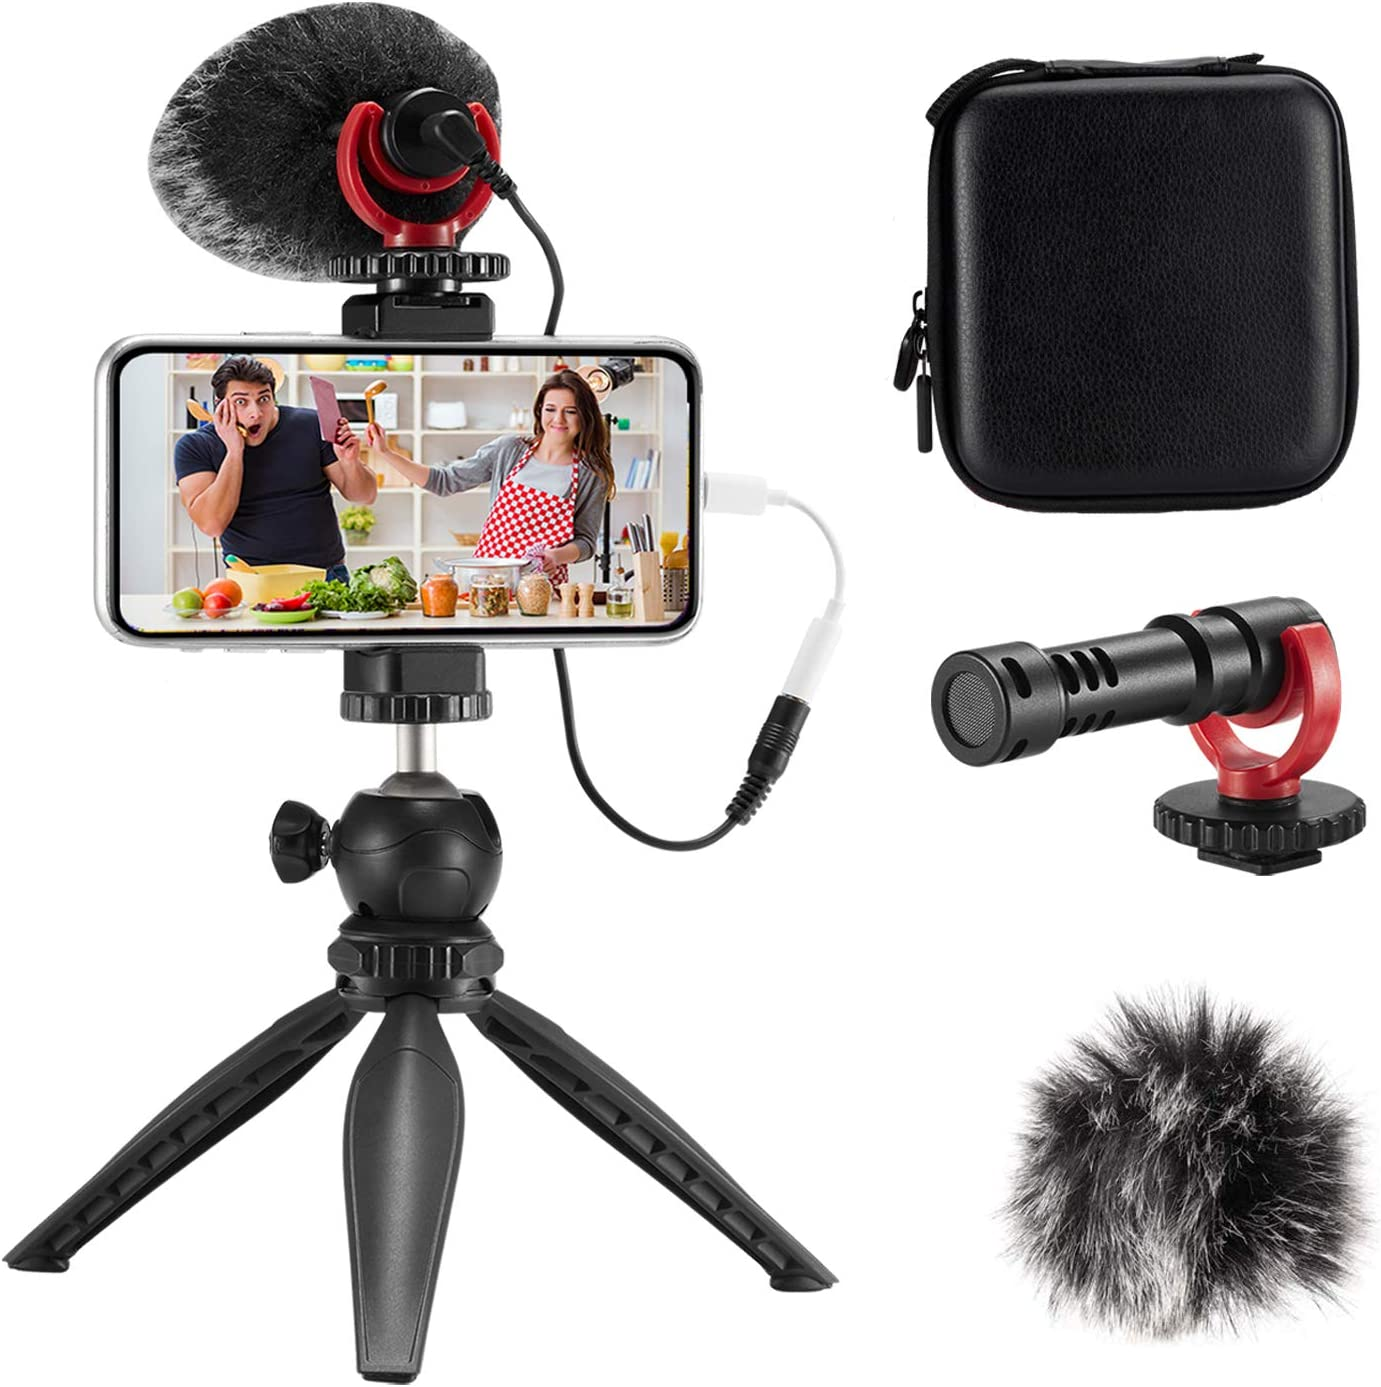 FULAIM Smartphone Video Microphone Kit, Shotgun Mic Rig Video Recording Accessories w/Phone Holder Tripod Compatible with iPhone XS Max 11 Pro 8 Plus 7 Samsung Huawei etc. for TIK Tok YouTube Vlogging